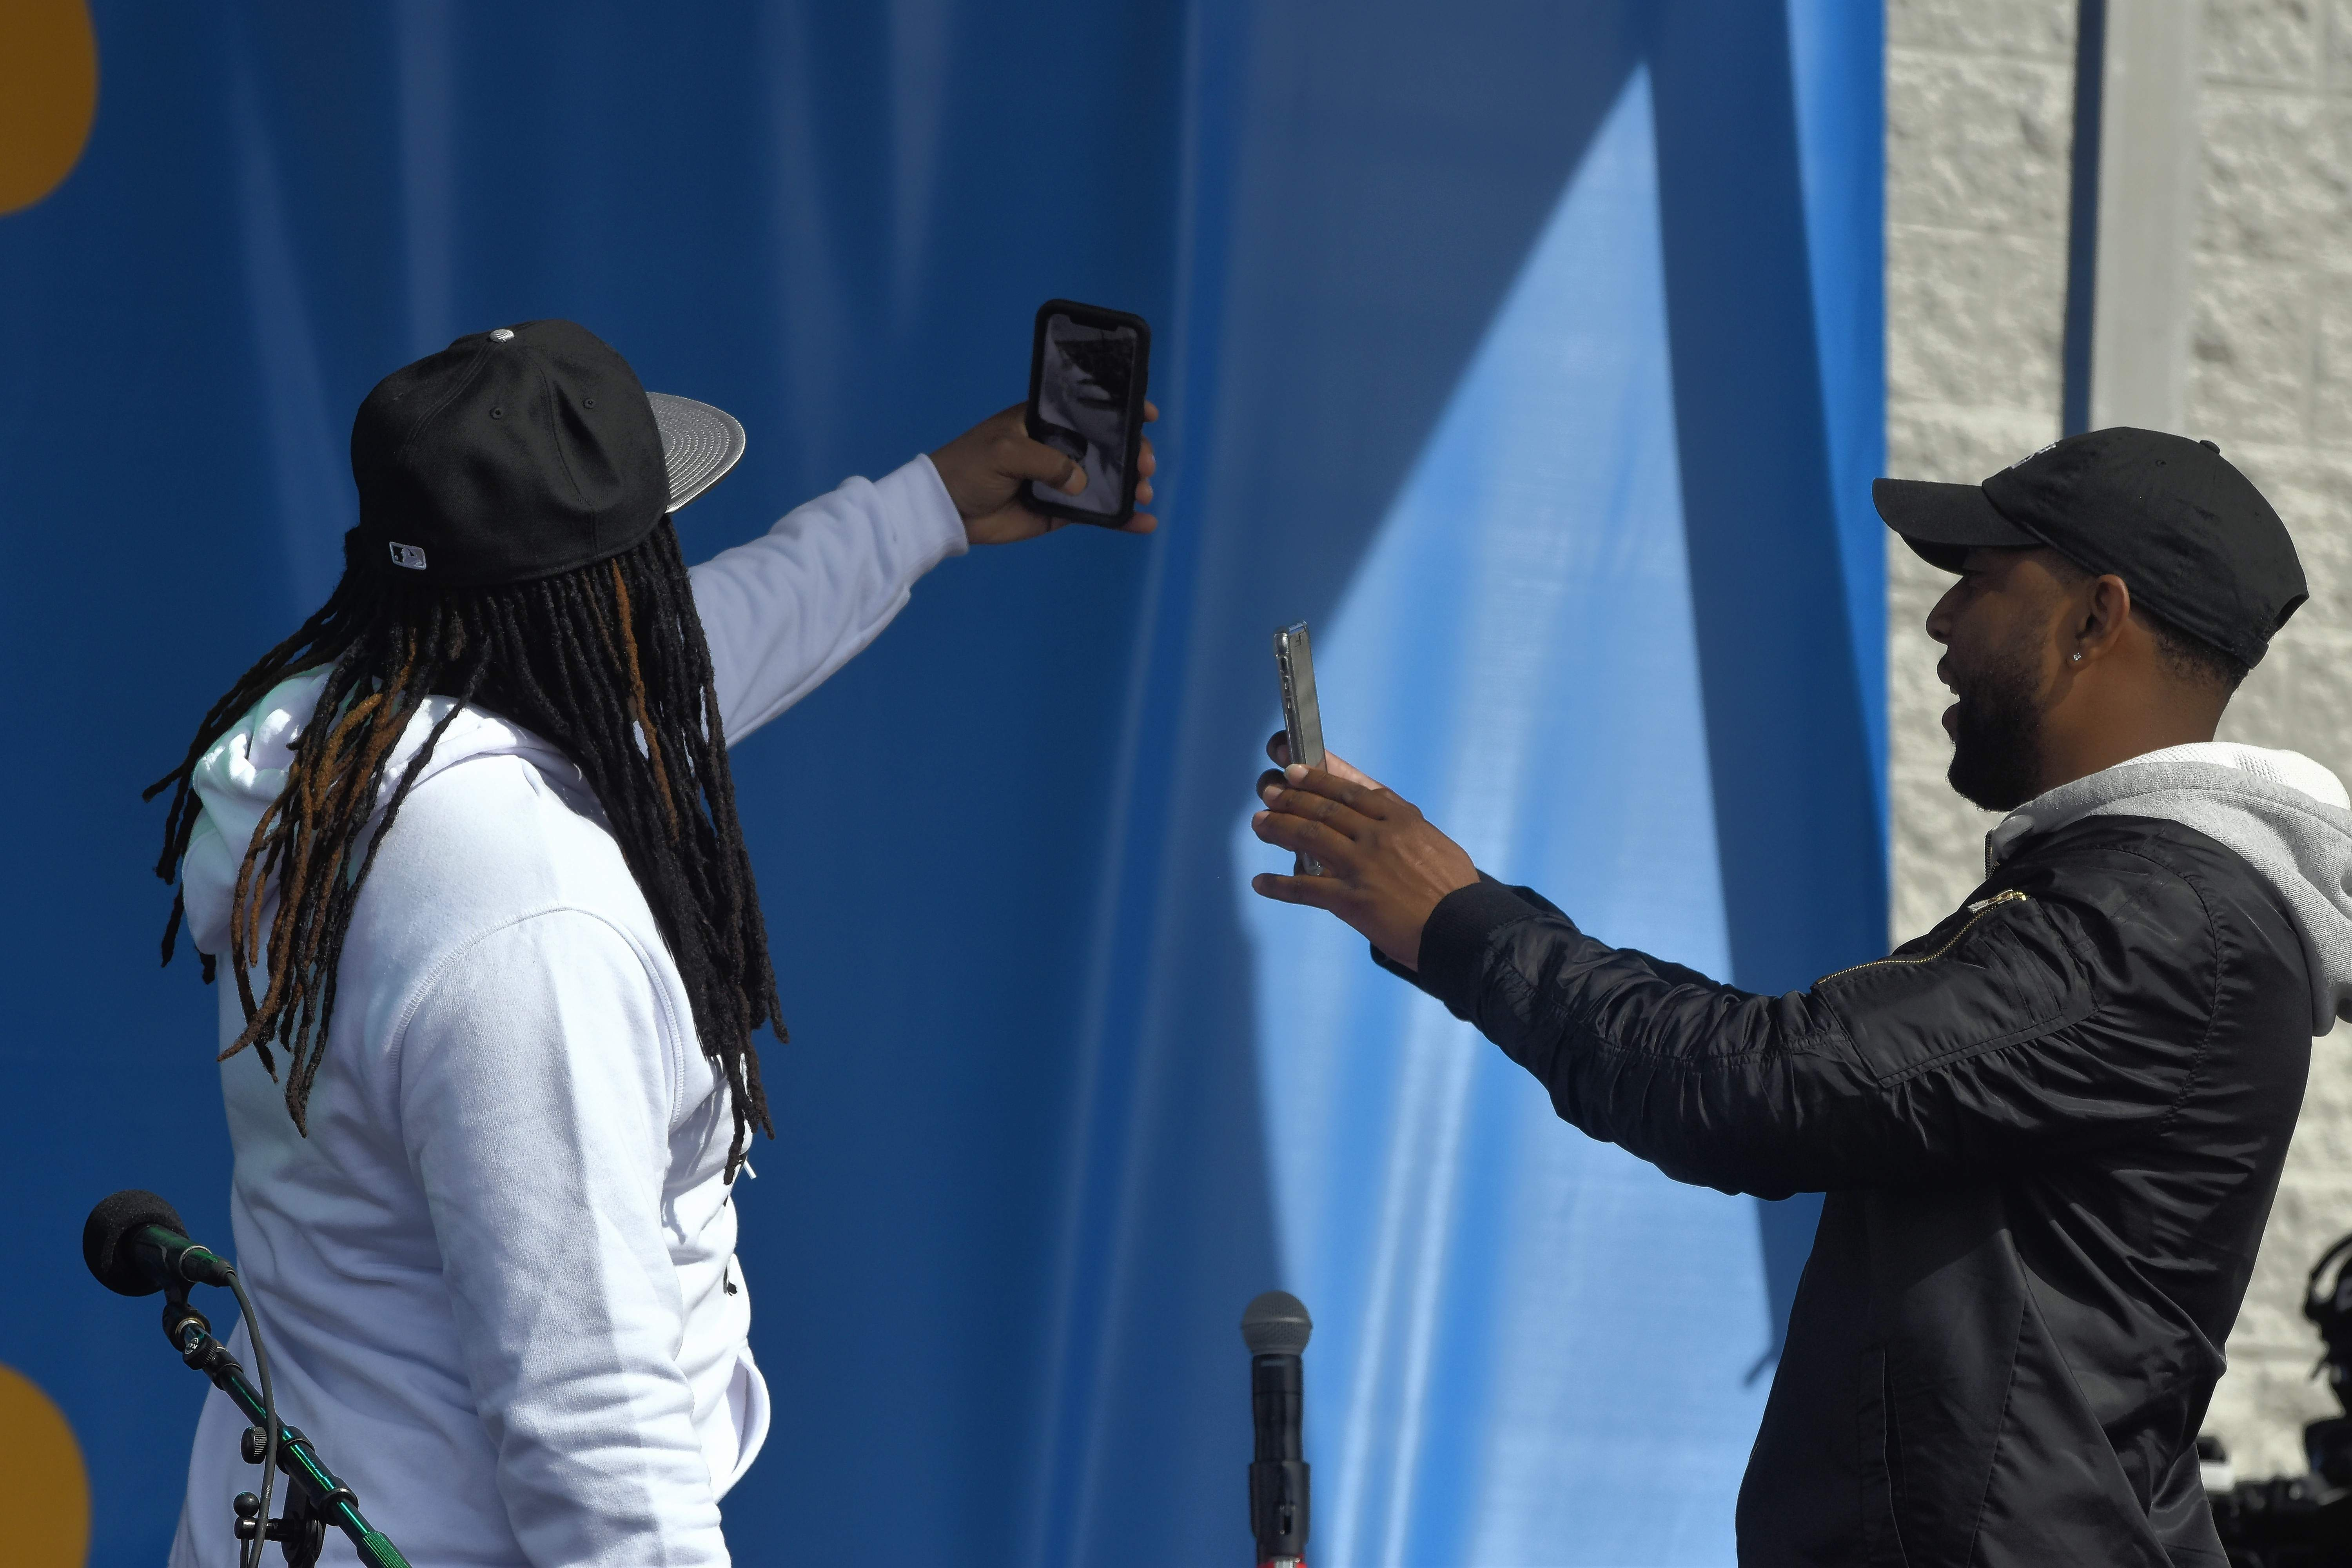 Remix artist D.J. Suede and a crewmember take selfies with the crowd in the background prior to the Mason Ramsey concert Wednesday.